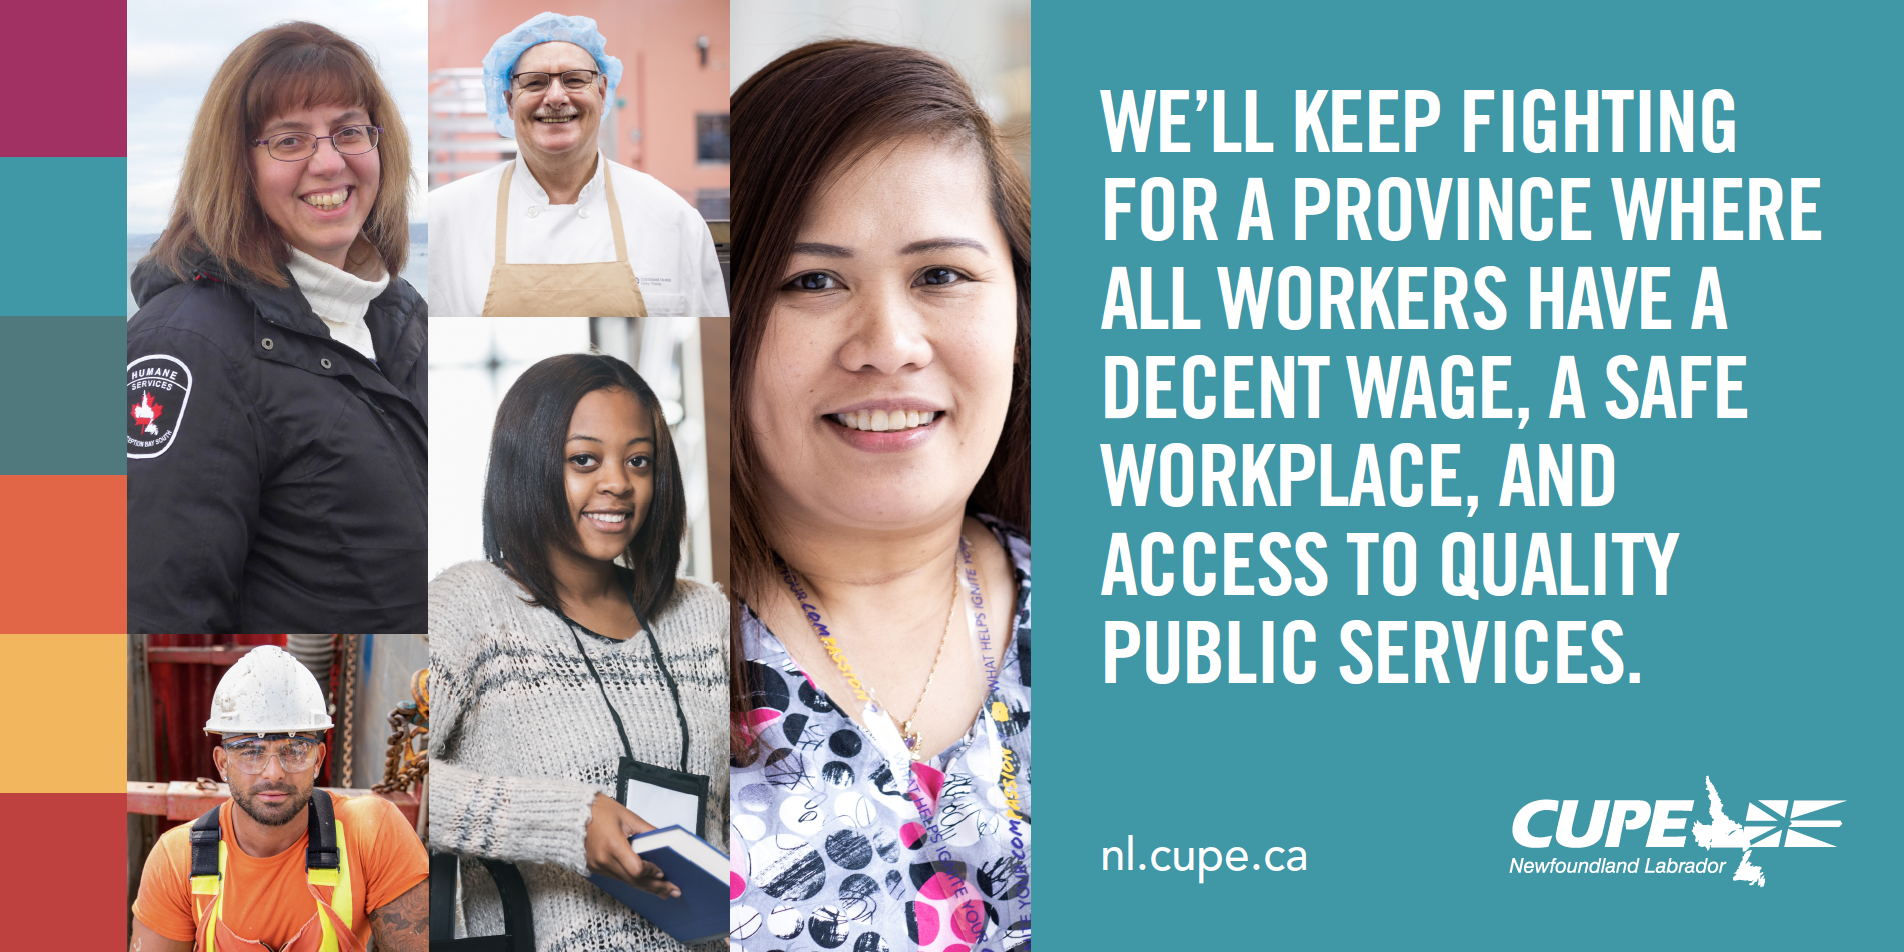 Web banner. Images: CUPE NL logo and 5 photos of workers wearing work clothes, representing emergency services, health care, municipal, and education sectors. Text: Fighting for a province where all workers have a decent wage, a safe workplace and quality public services. nl.cupe.ca